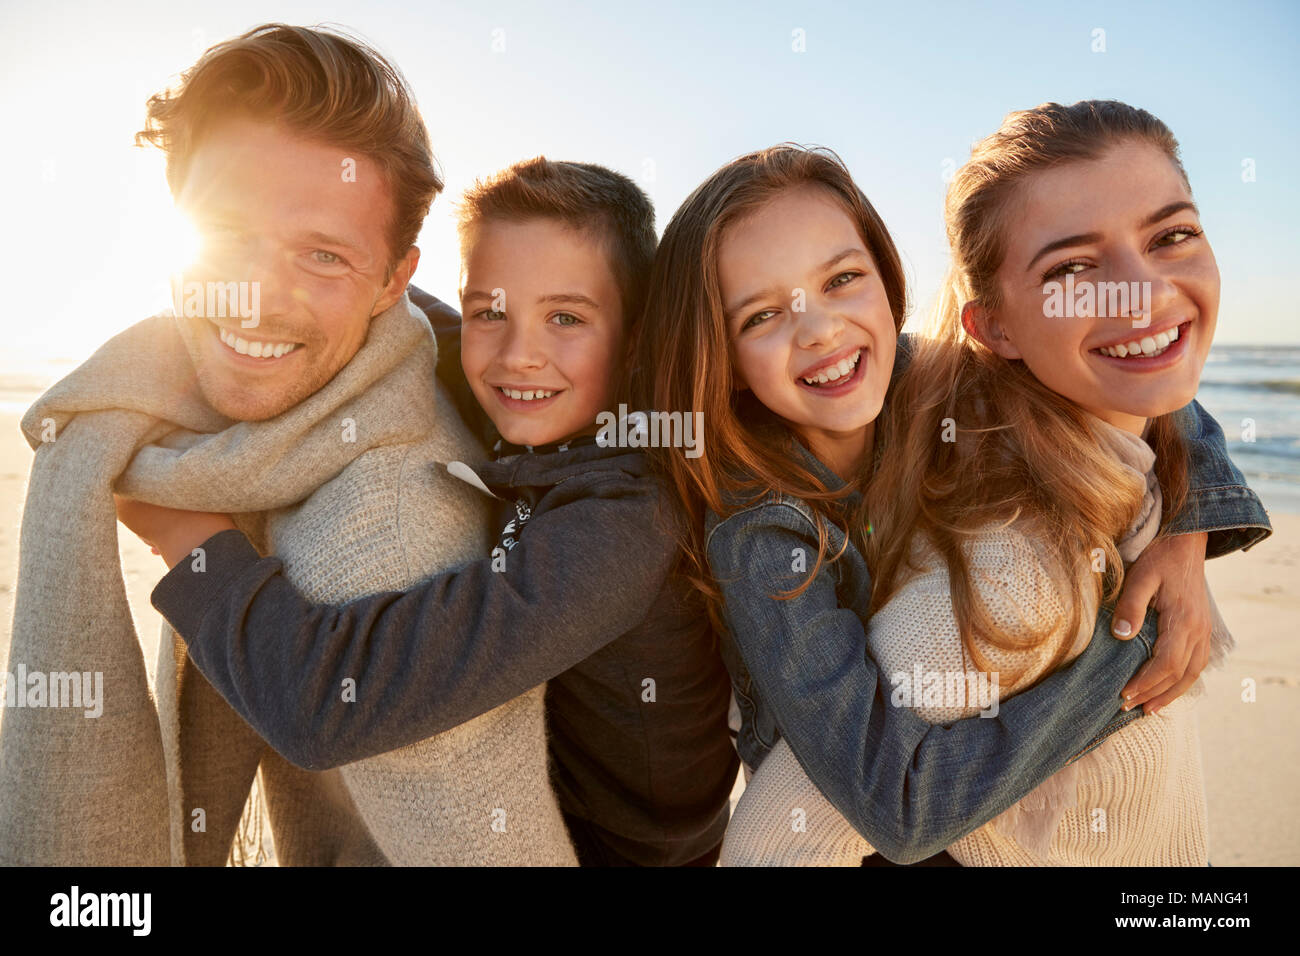 Parents Giving Children Piggyback Rides On Winter Beach - Stock Image